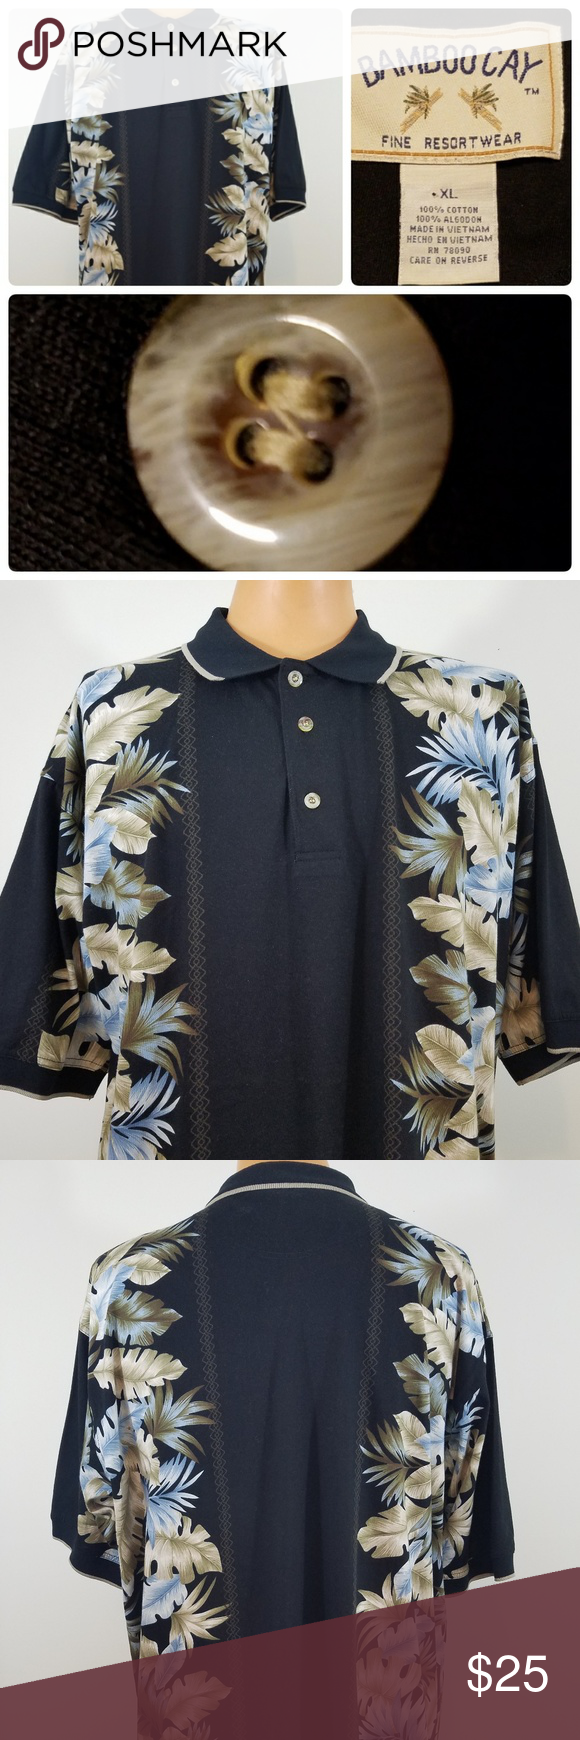 a78c00ad Bamboo Cay Shirts Near Me – Rockwall Auction